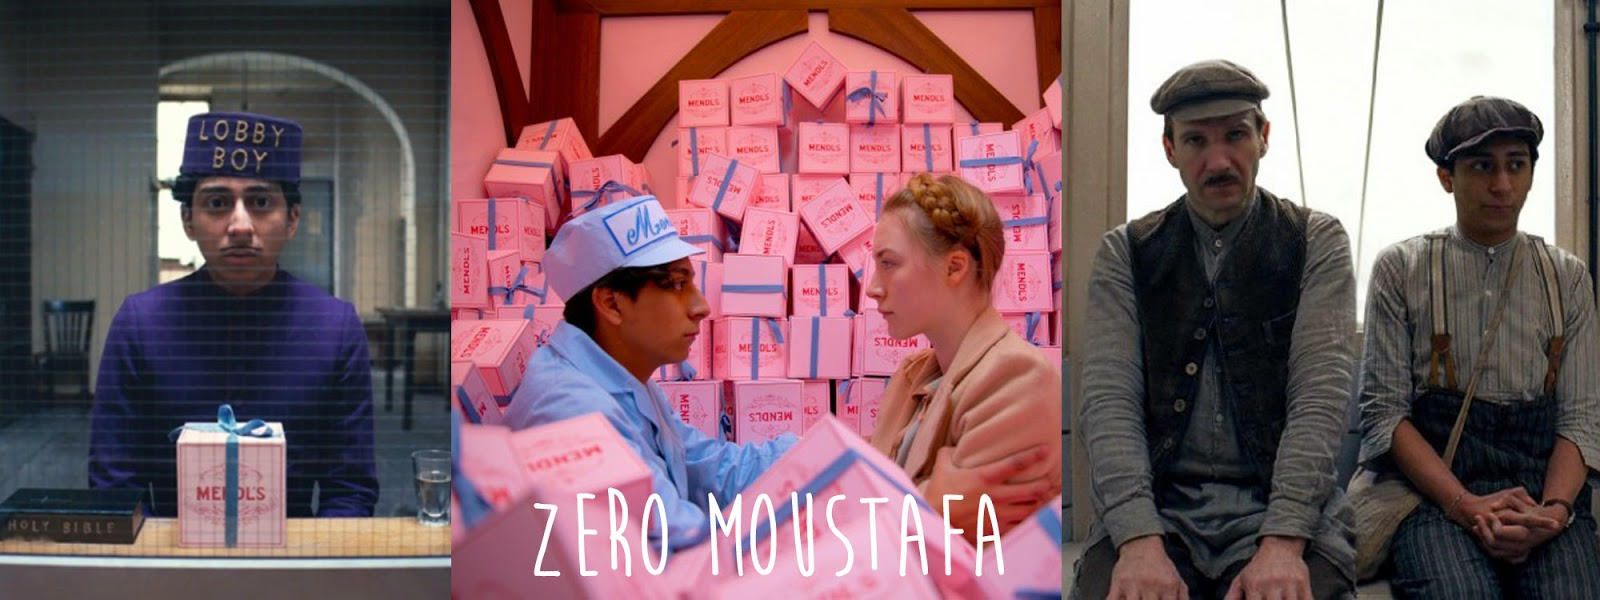 Grand Budapest Hotel Quotes Sincerely Sara  Style & Books Inspired By The Grand Budapest Hotel